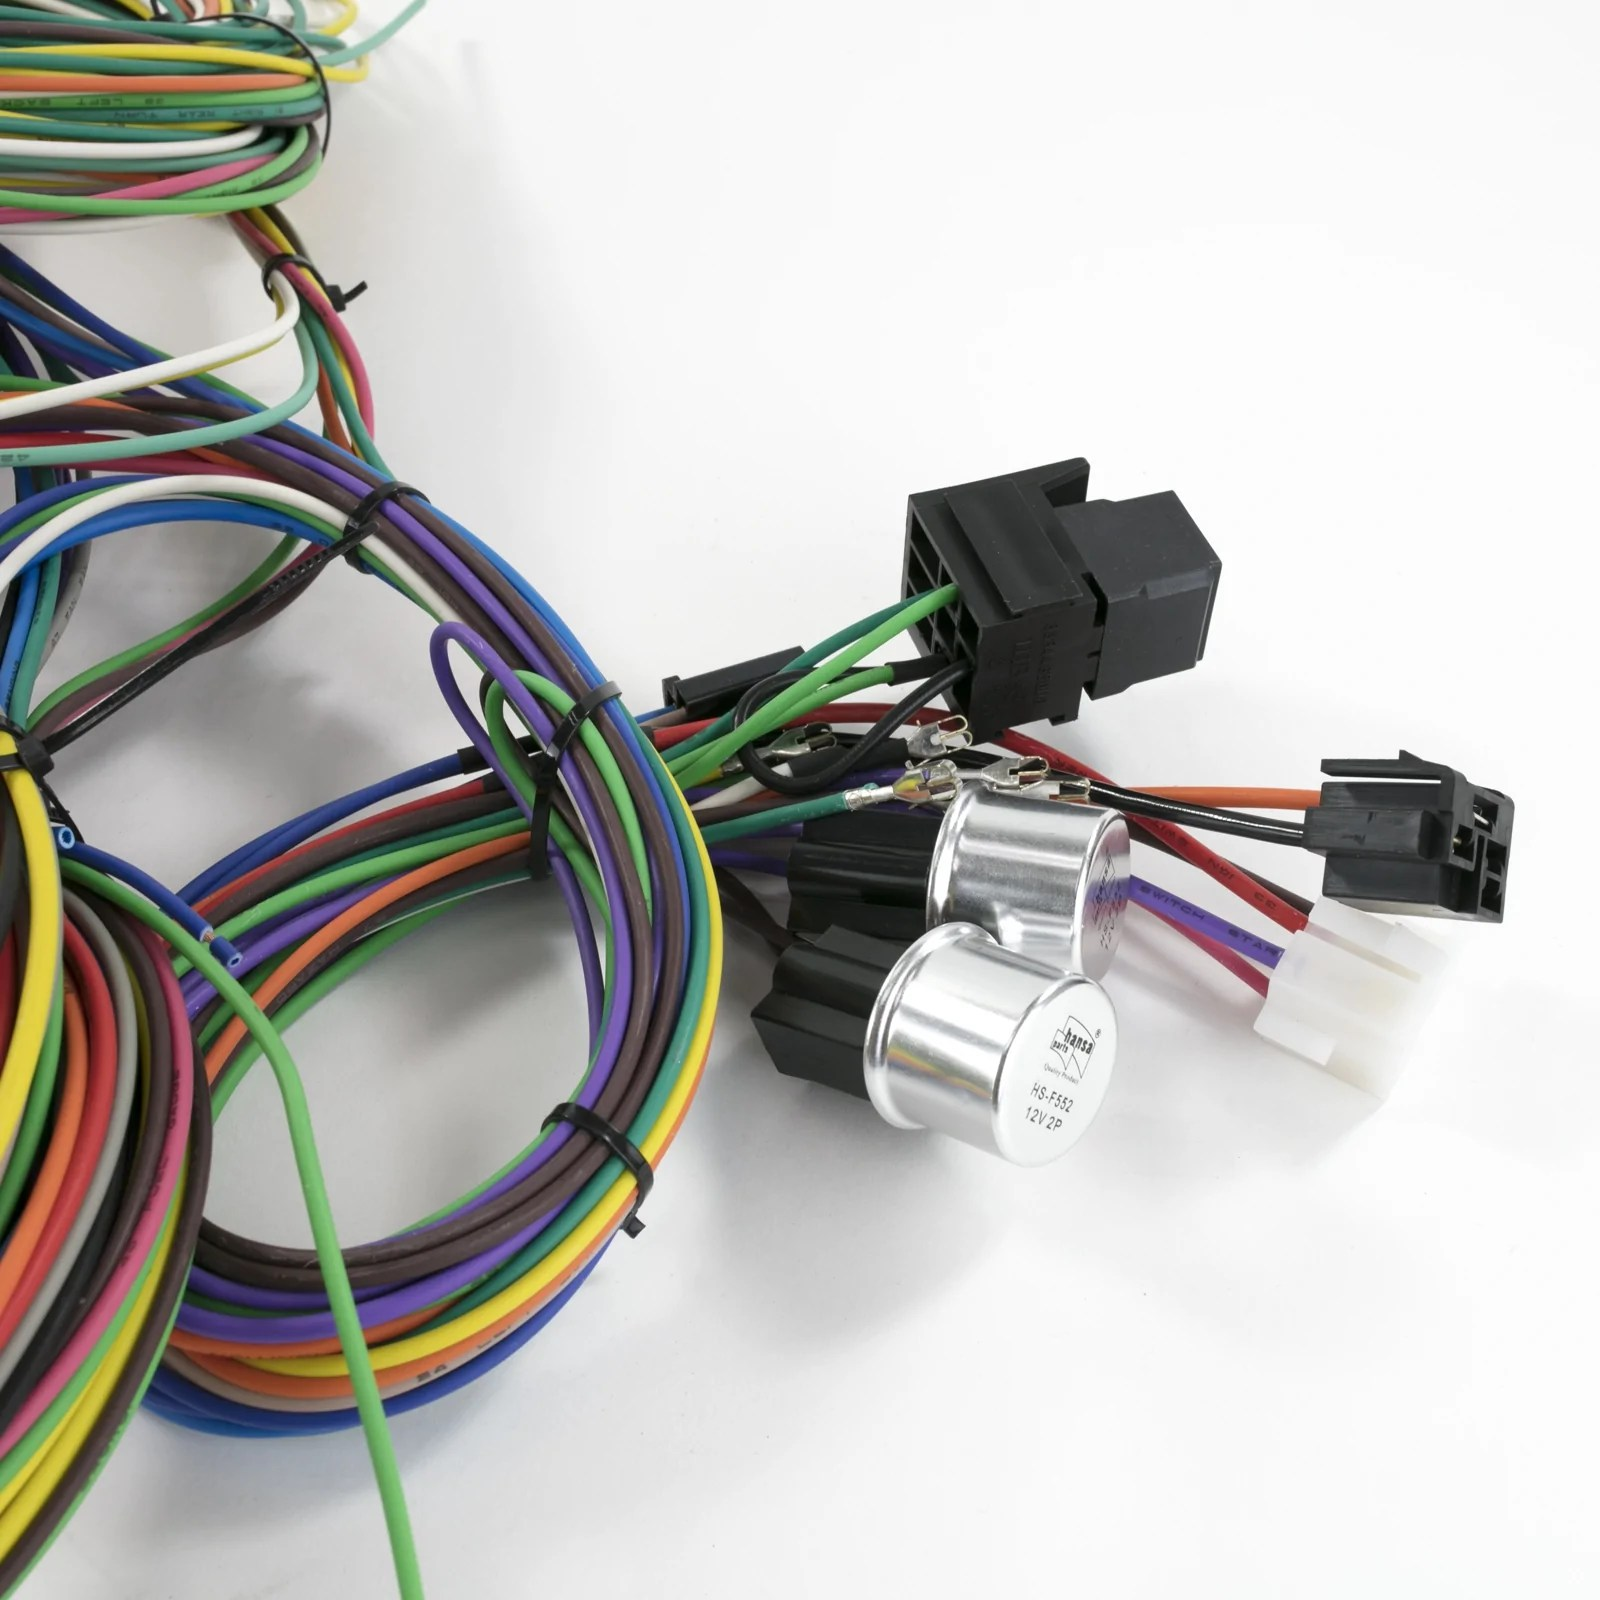 medium resolution of wiring harness universal 240z 260z 280z 510 z car depot 280z new wiring harness 280z wiring harness